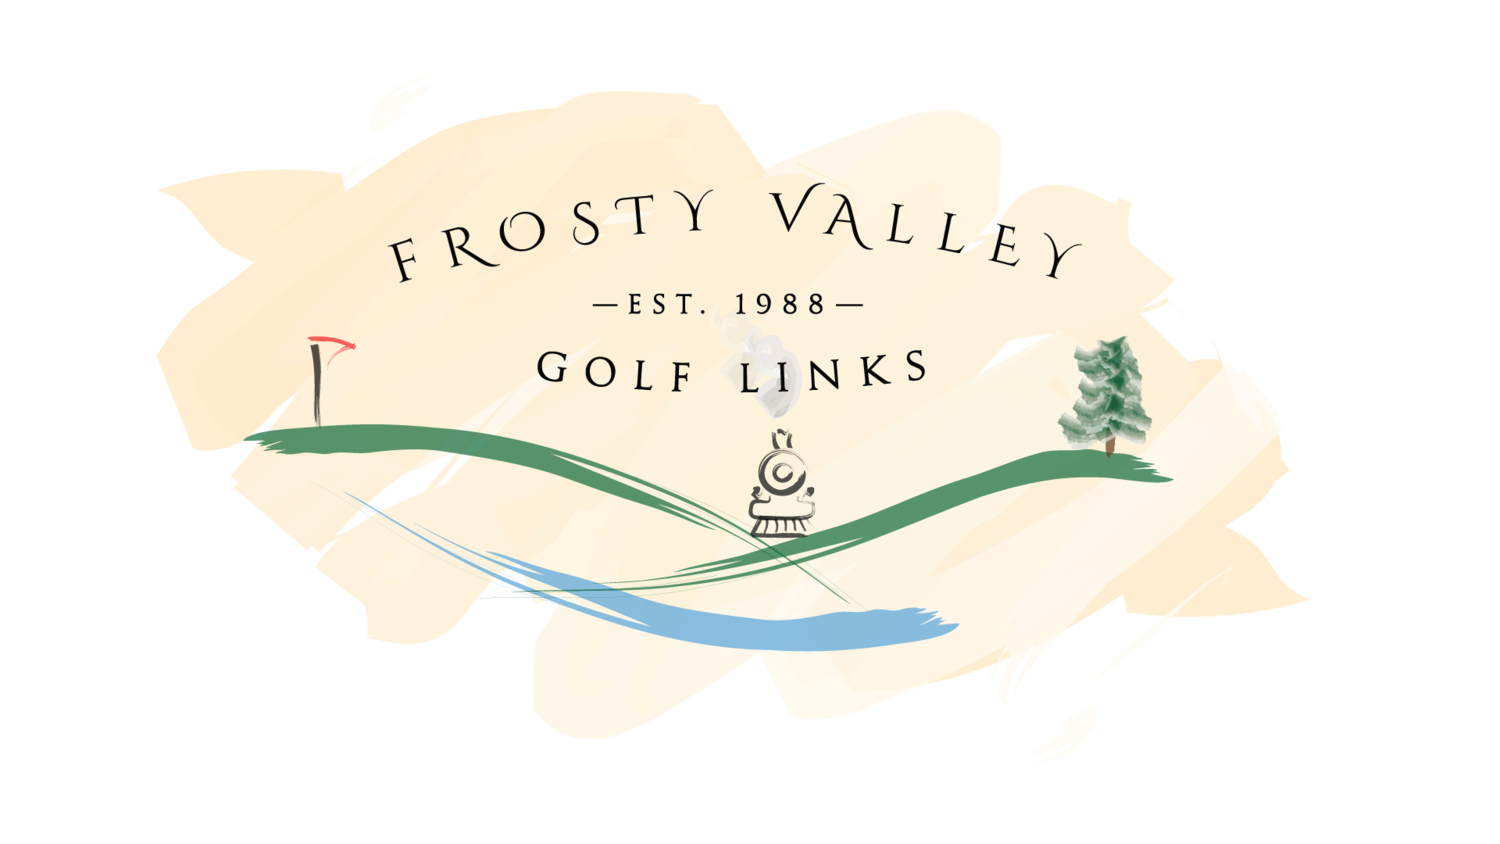 Frosty Valley Golf Links